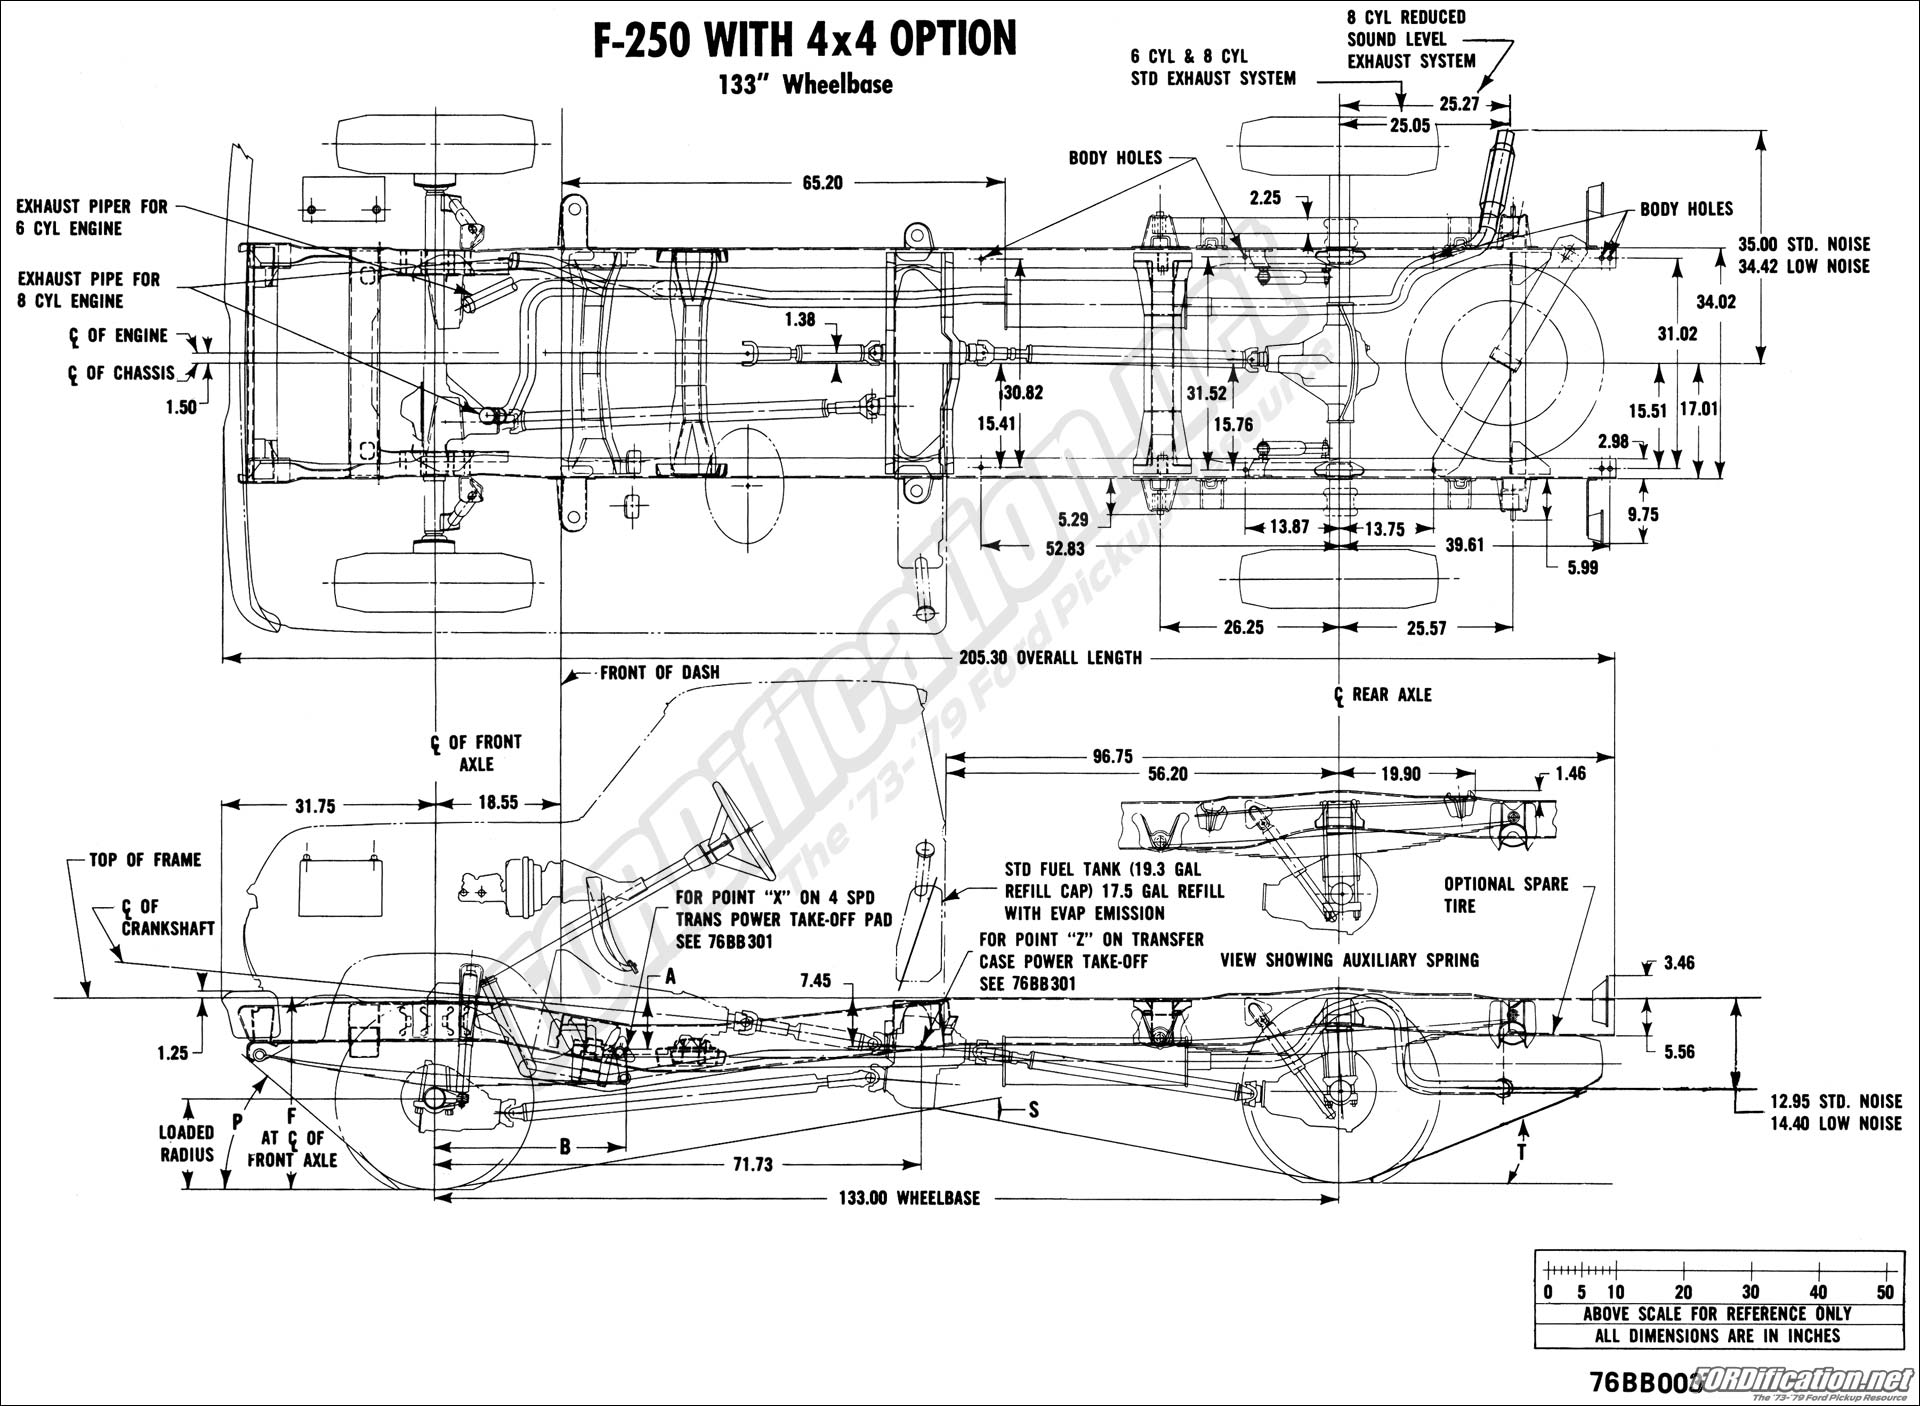 Schematics h besides 2000 Toyota Camry Body Parts Diagram besides 4wd 4l80e Sd Sensor Location also Bodybuilder76 besides 2004 Ford F 250 Fuse Panel Diagram 2004 Automotive Wiring Diagrams With Regard To Ford F350 Fuse Box Location. on 1997 ford f 250 crew cab